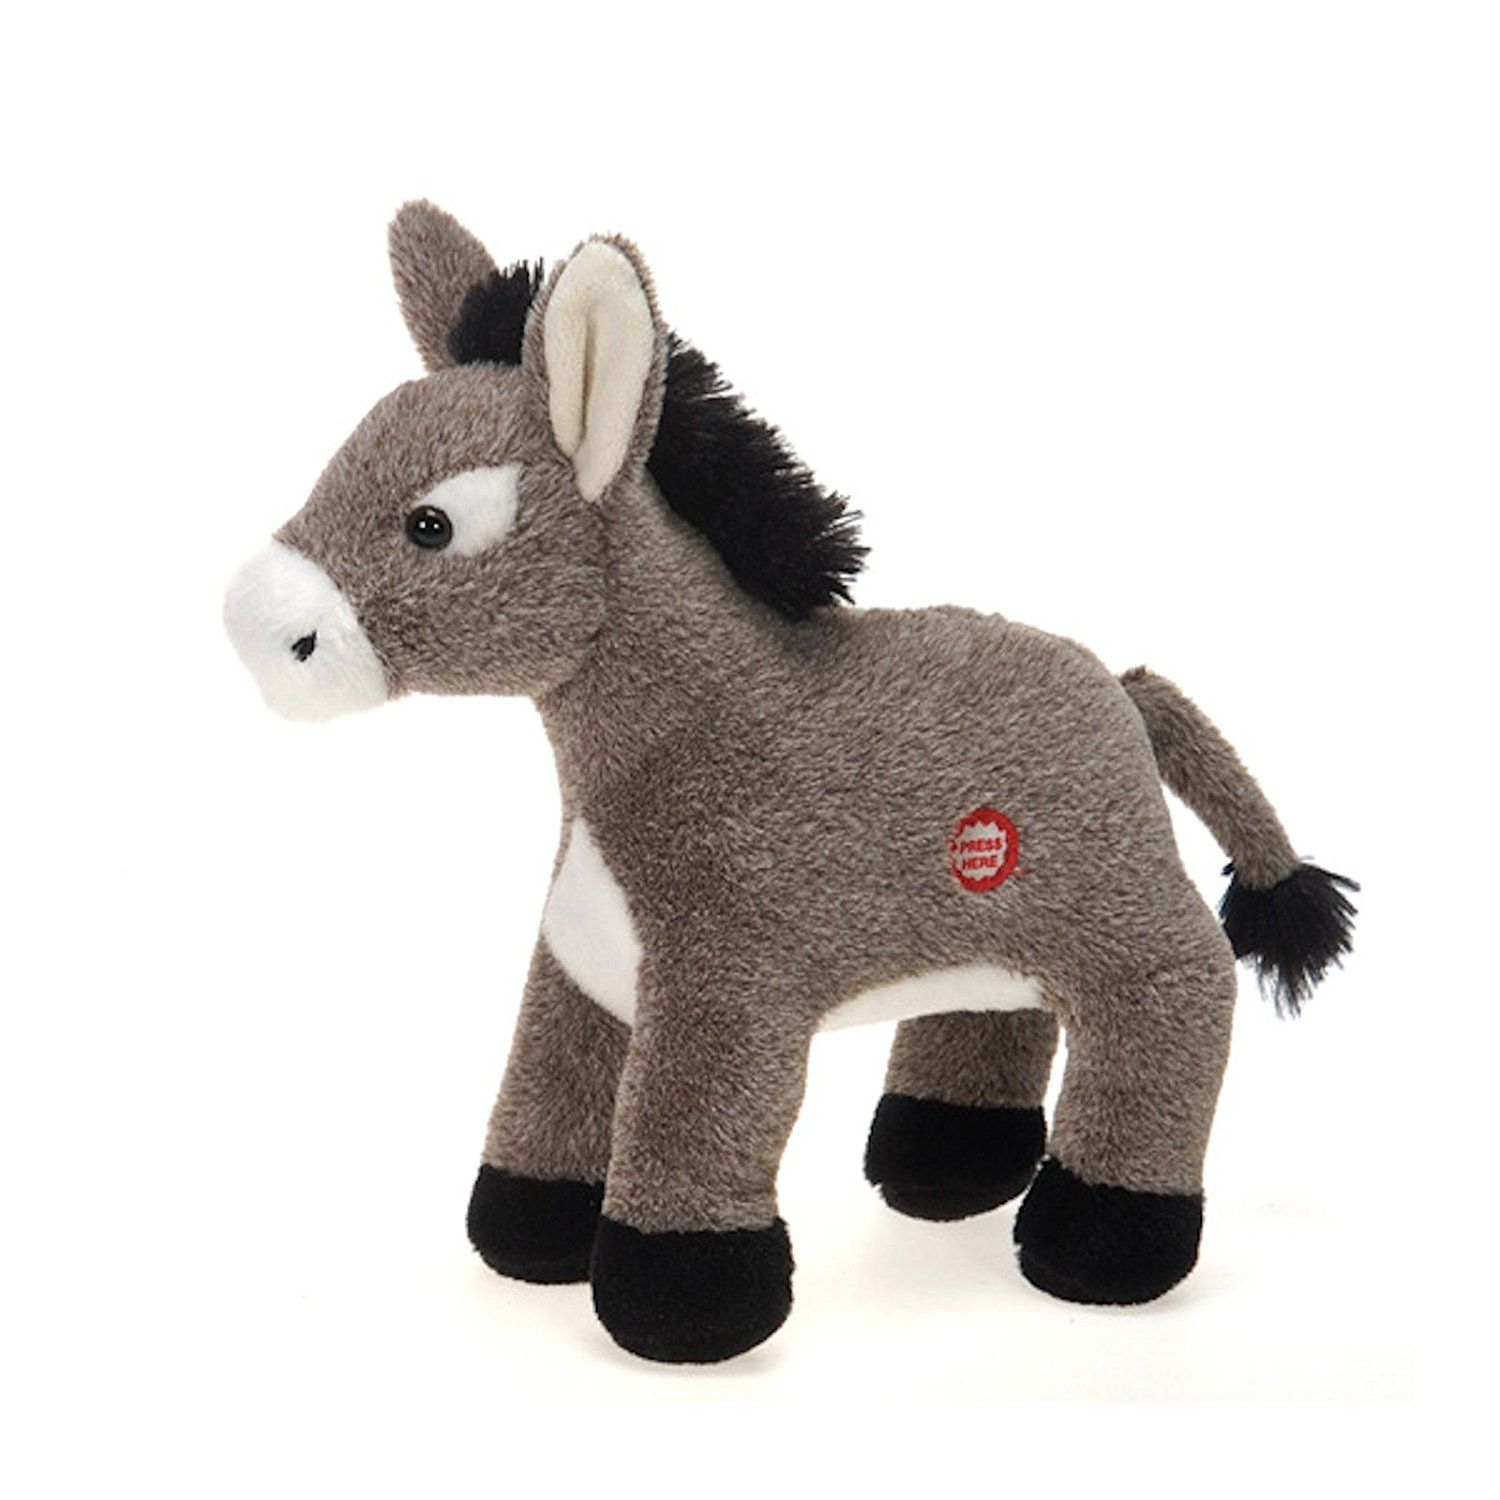 Dominic the Donkey with Sound Plush Stuffed